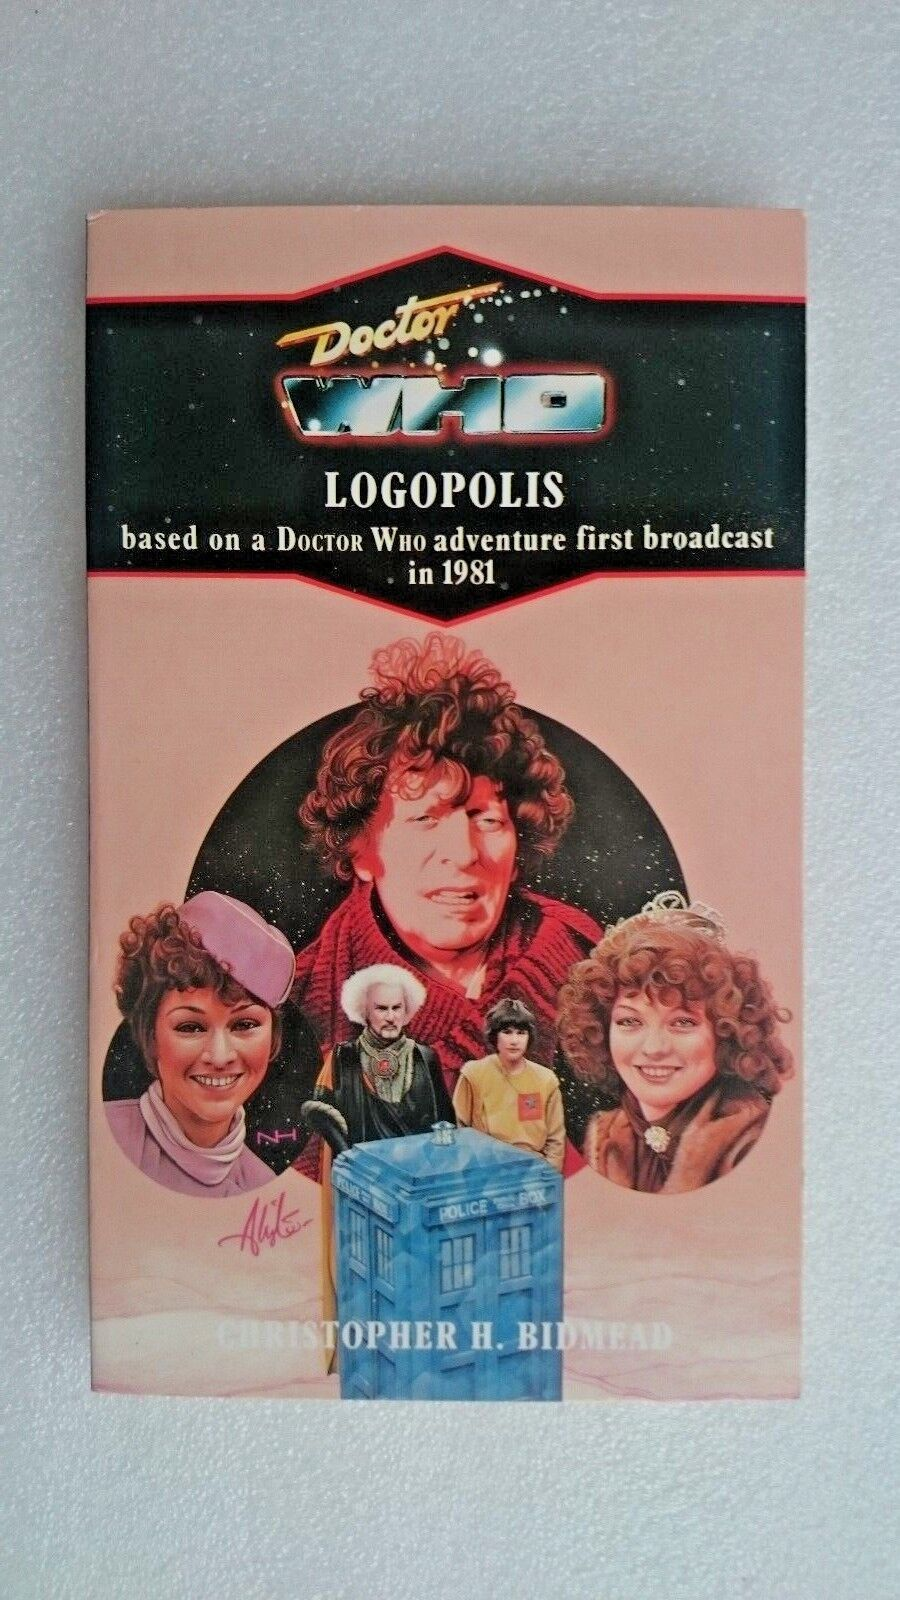 Doctor Who-Logopolis by Christopher H. Bidmead (Virgin Paperback, 1991)